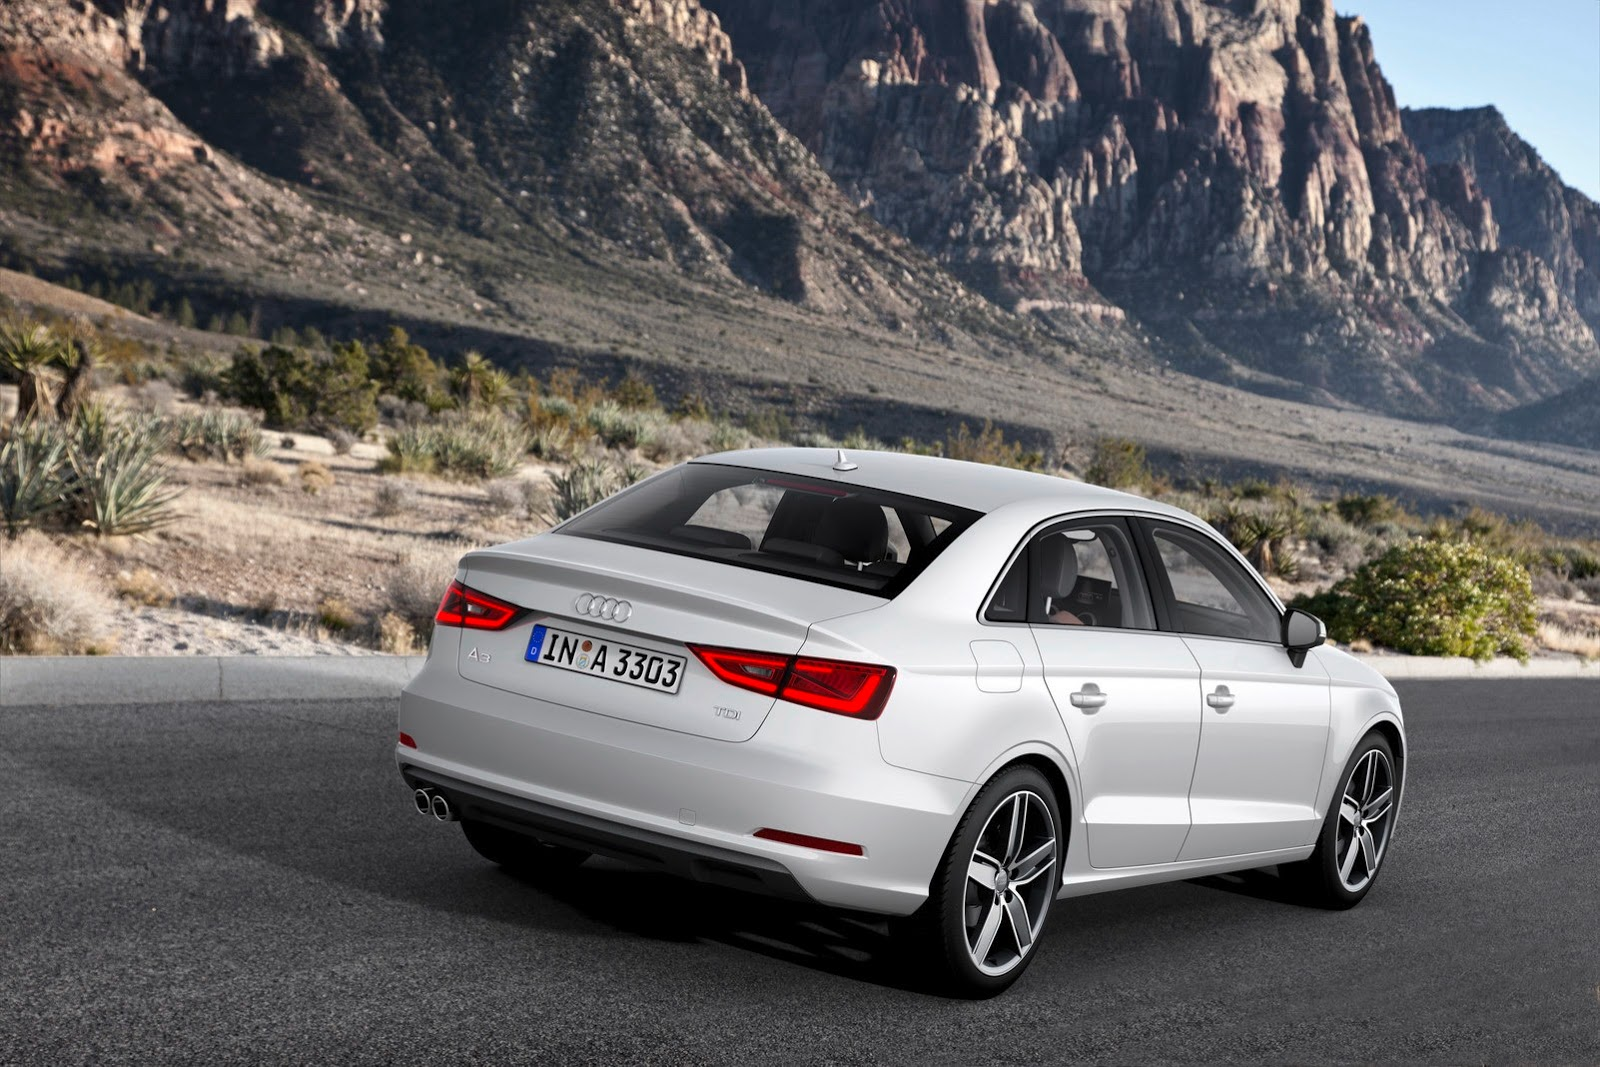 2015 audi a3 gets 2 0 tsi with quattro for 32 900 autoevolution. Black Bedroom Furniture Sets. Home Design Ideas